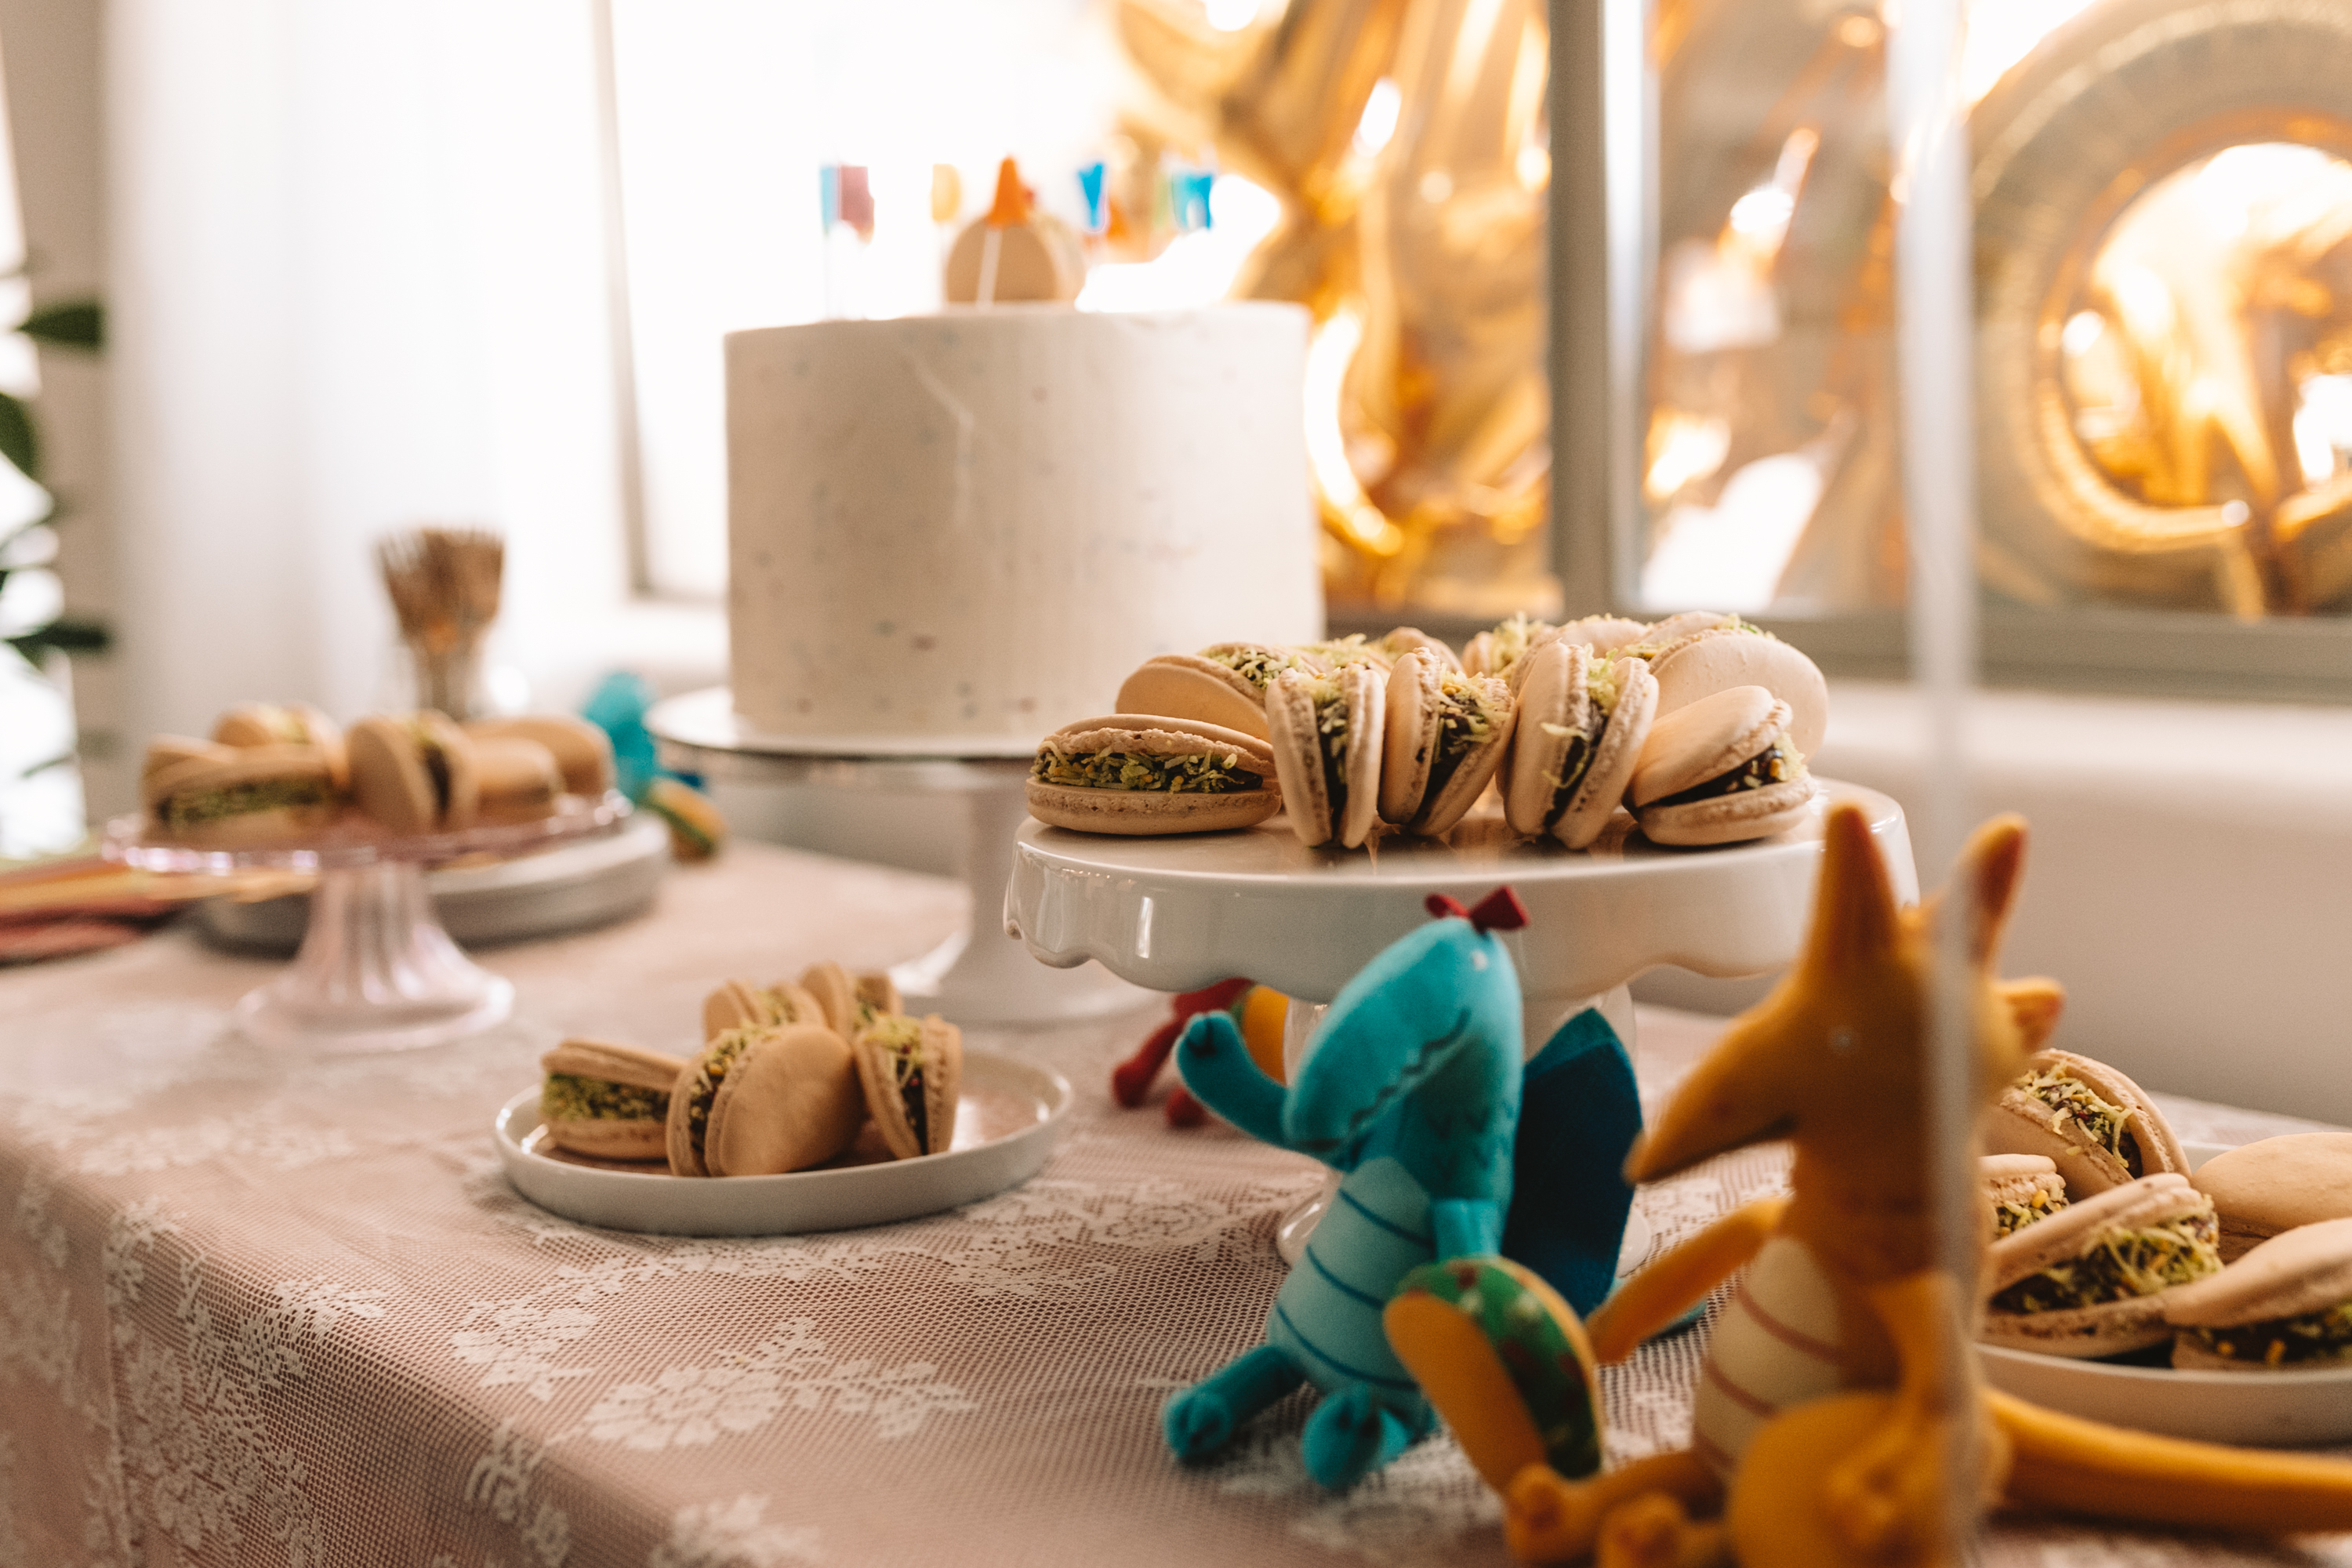 the cutest little taco macaroons for the desert table this kid's birthday party!